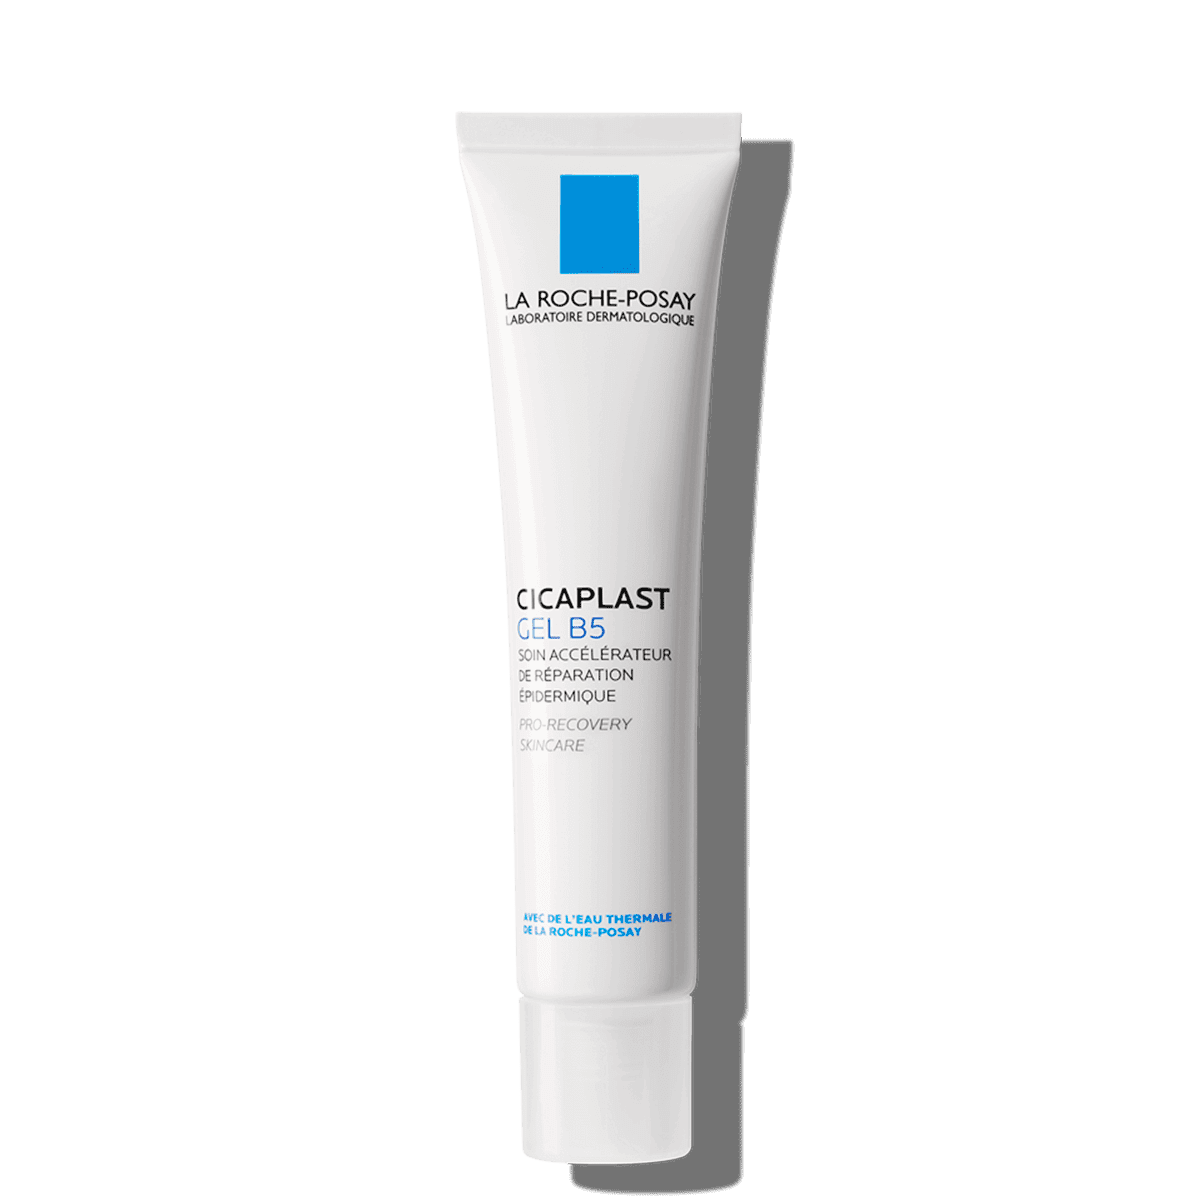 La Roche Posay ProductPage Damaged Cicaplast Gel B5 Pro Recovery 40ml 3337875586269 Front